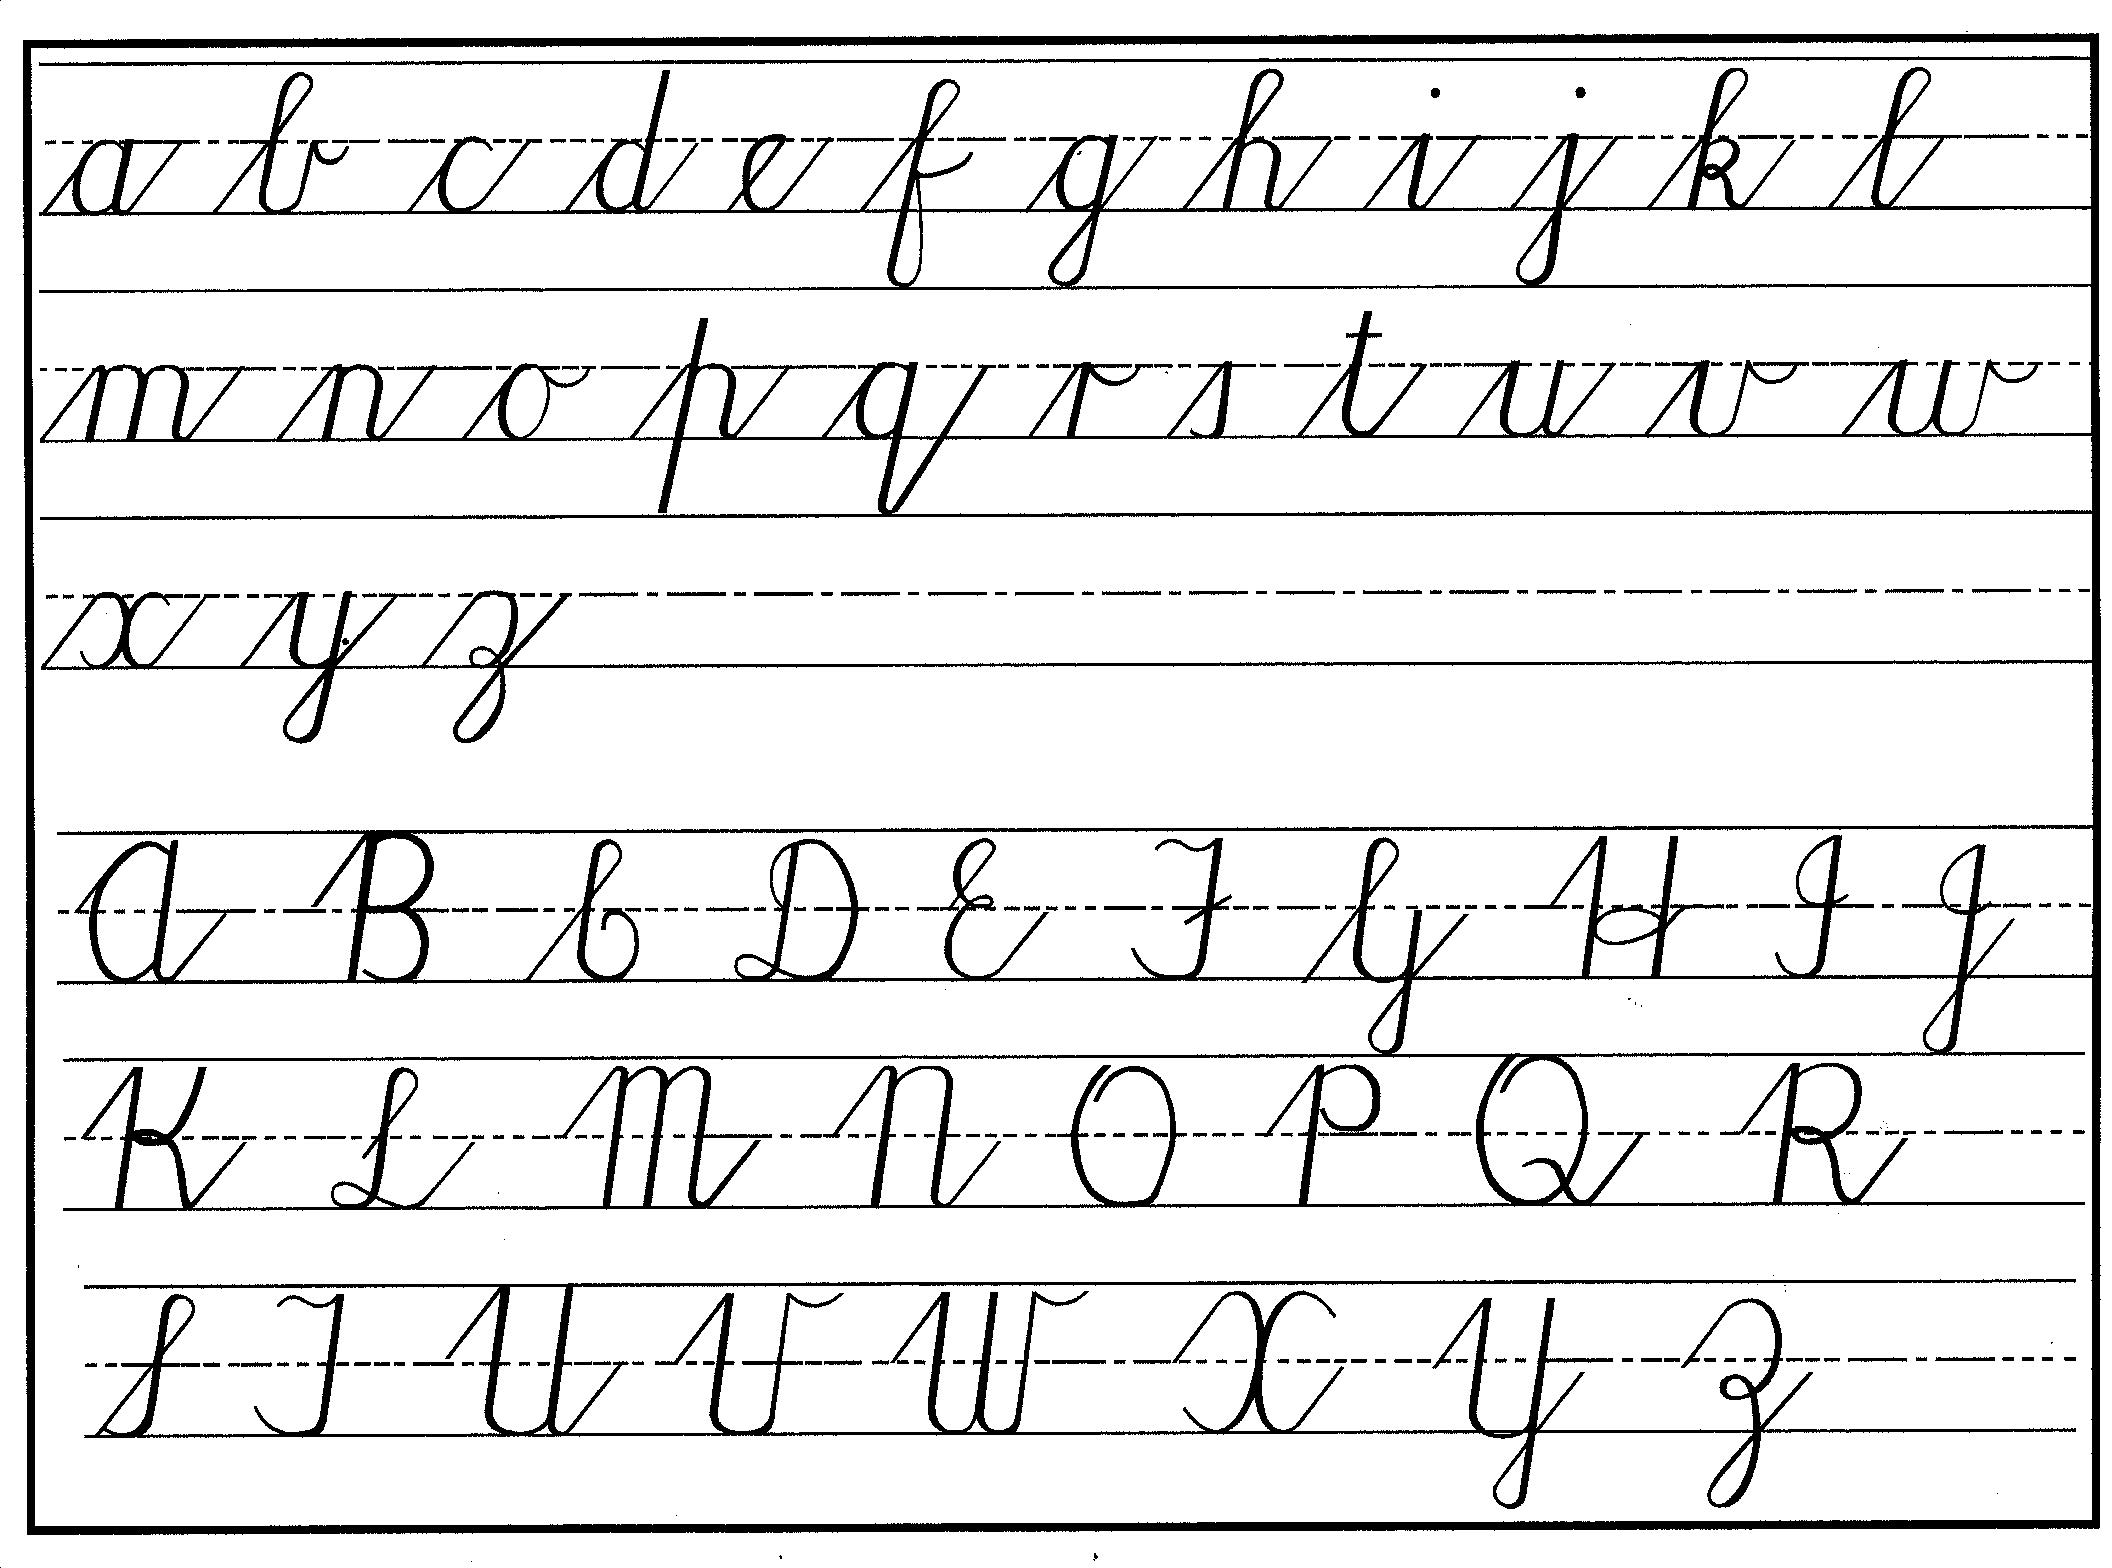 Dump cursive, if you must. But learn to read script!